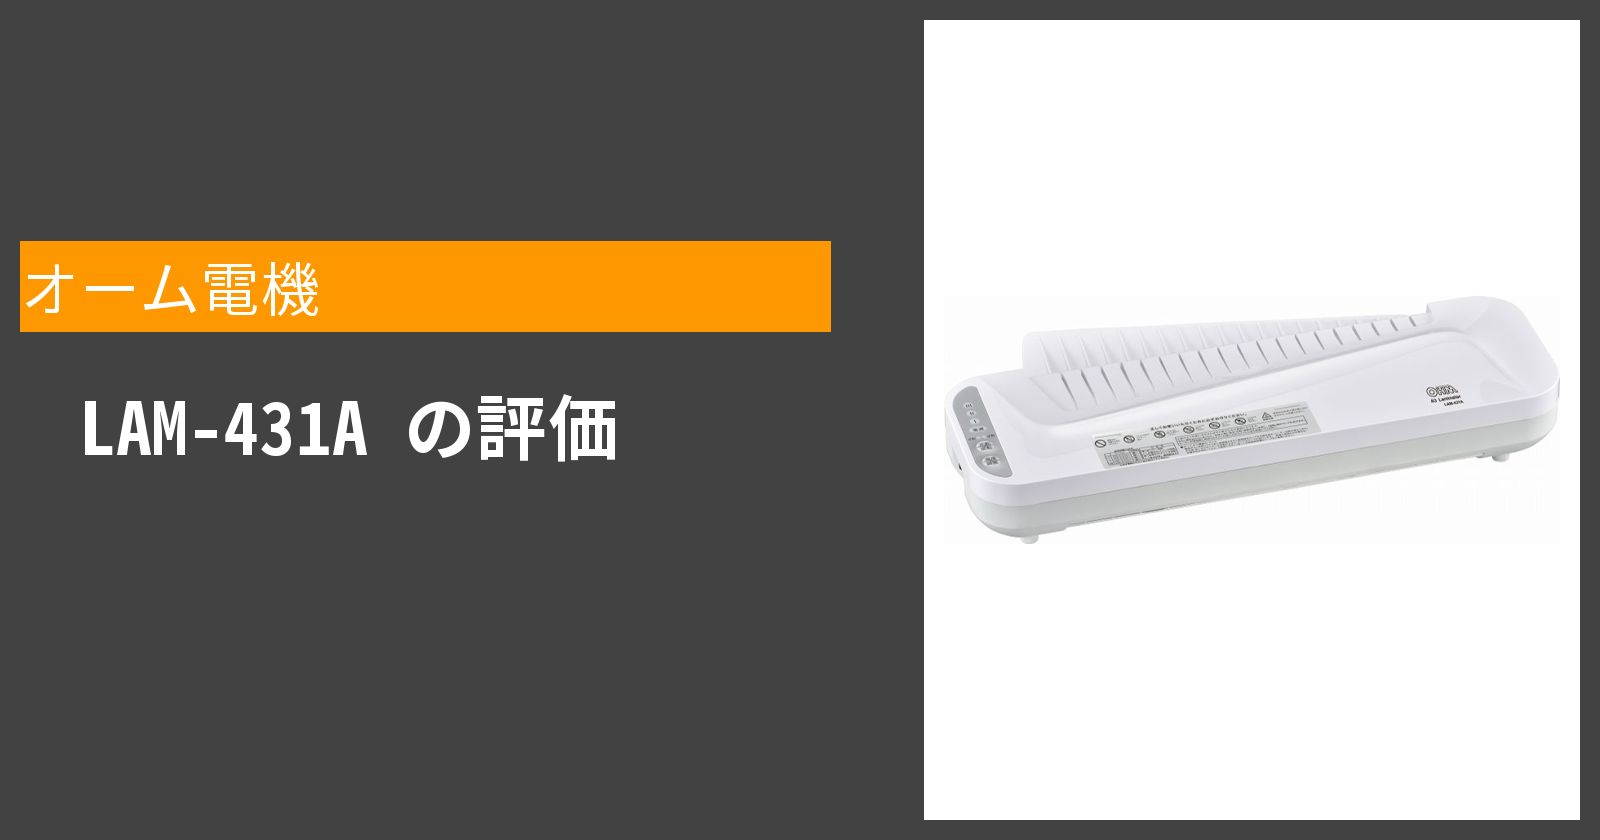 LAM-431Aを徹底評価